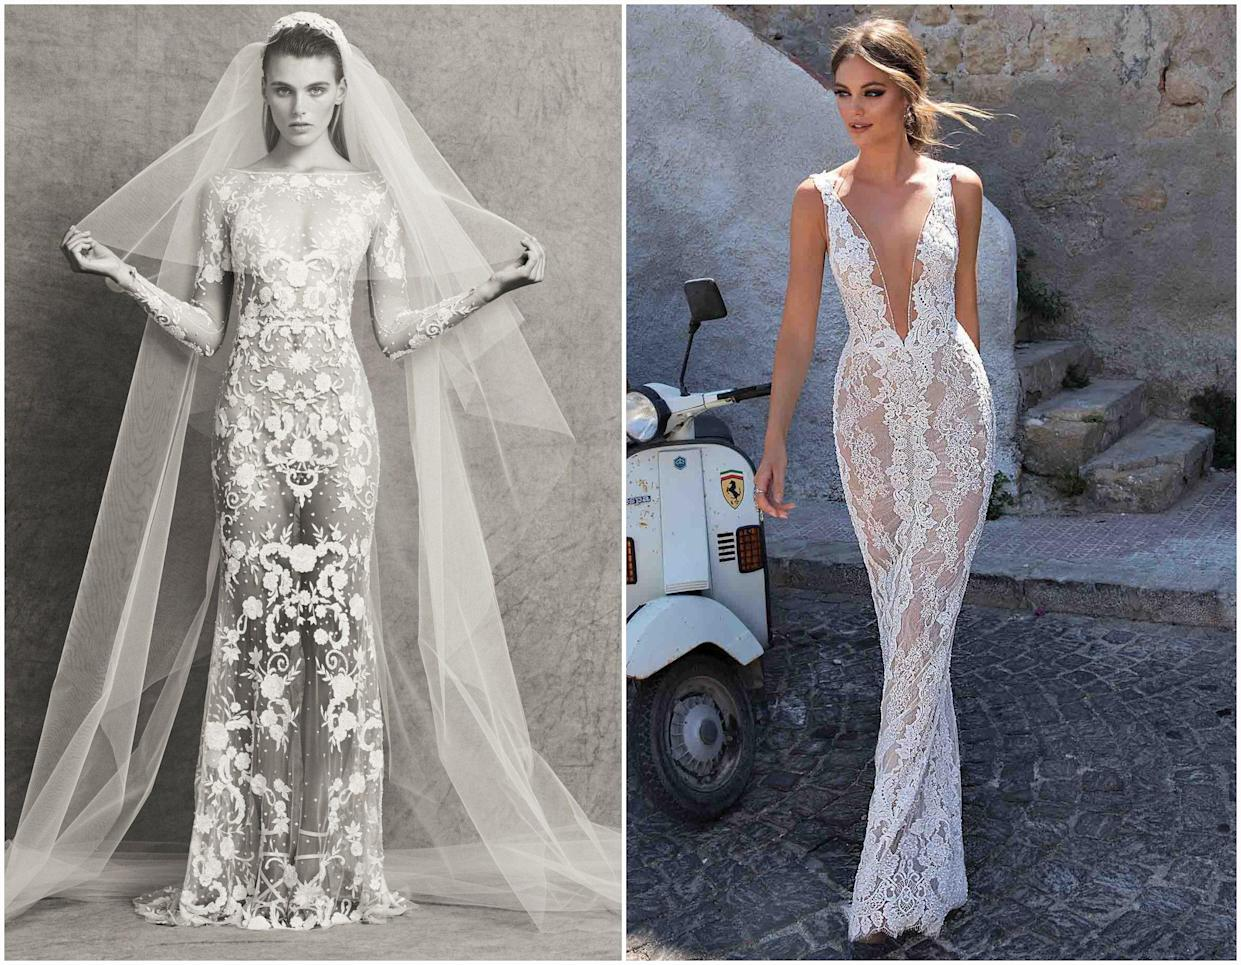 This Zuhair Murad dress (left) retails for $10,600, while the Muse by Berta design (right) sells for $8,500. Photo: Zuhair Murad and Muse by Berta